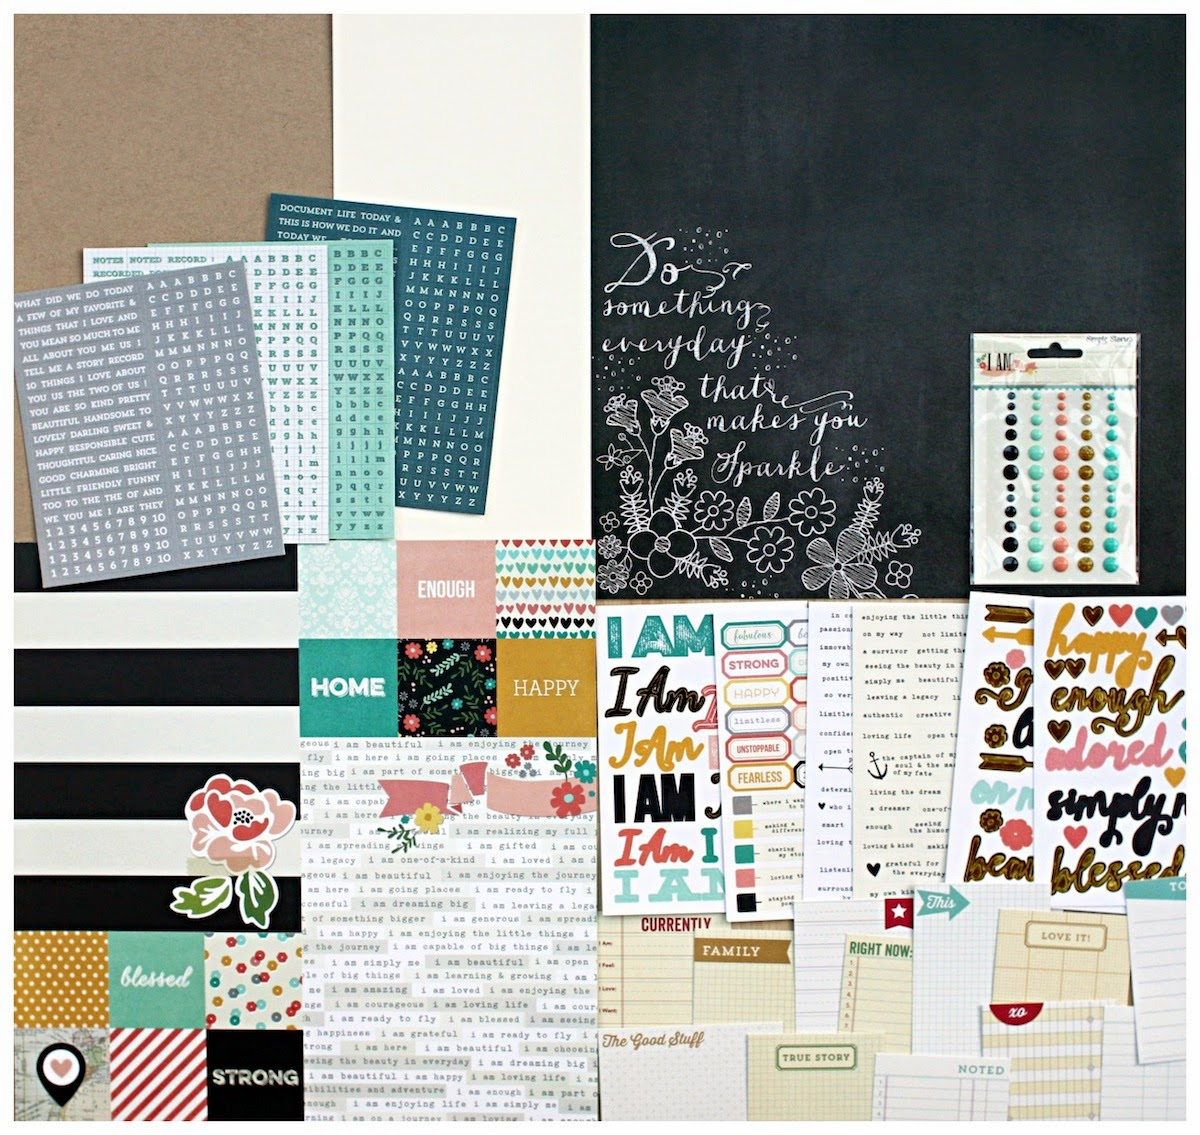 http://www.danipeuss.de/scrapbooking/396-danipeuss-kits/55-monatliche-kits/46604-mini-kit--add-on-april-2015